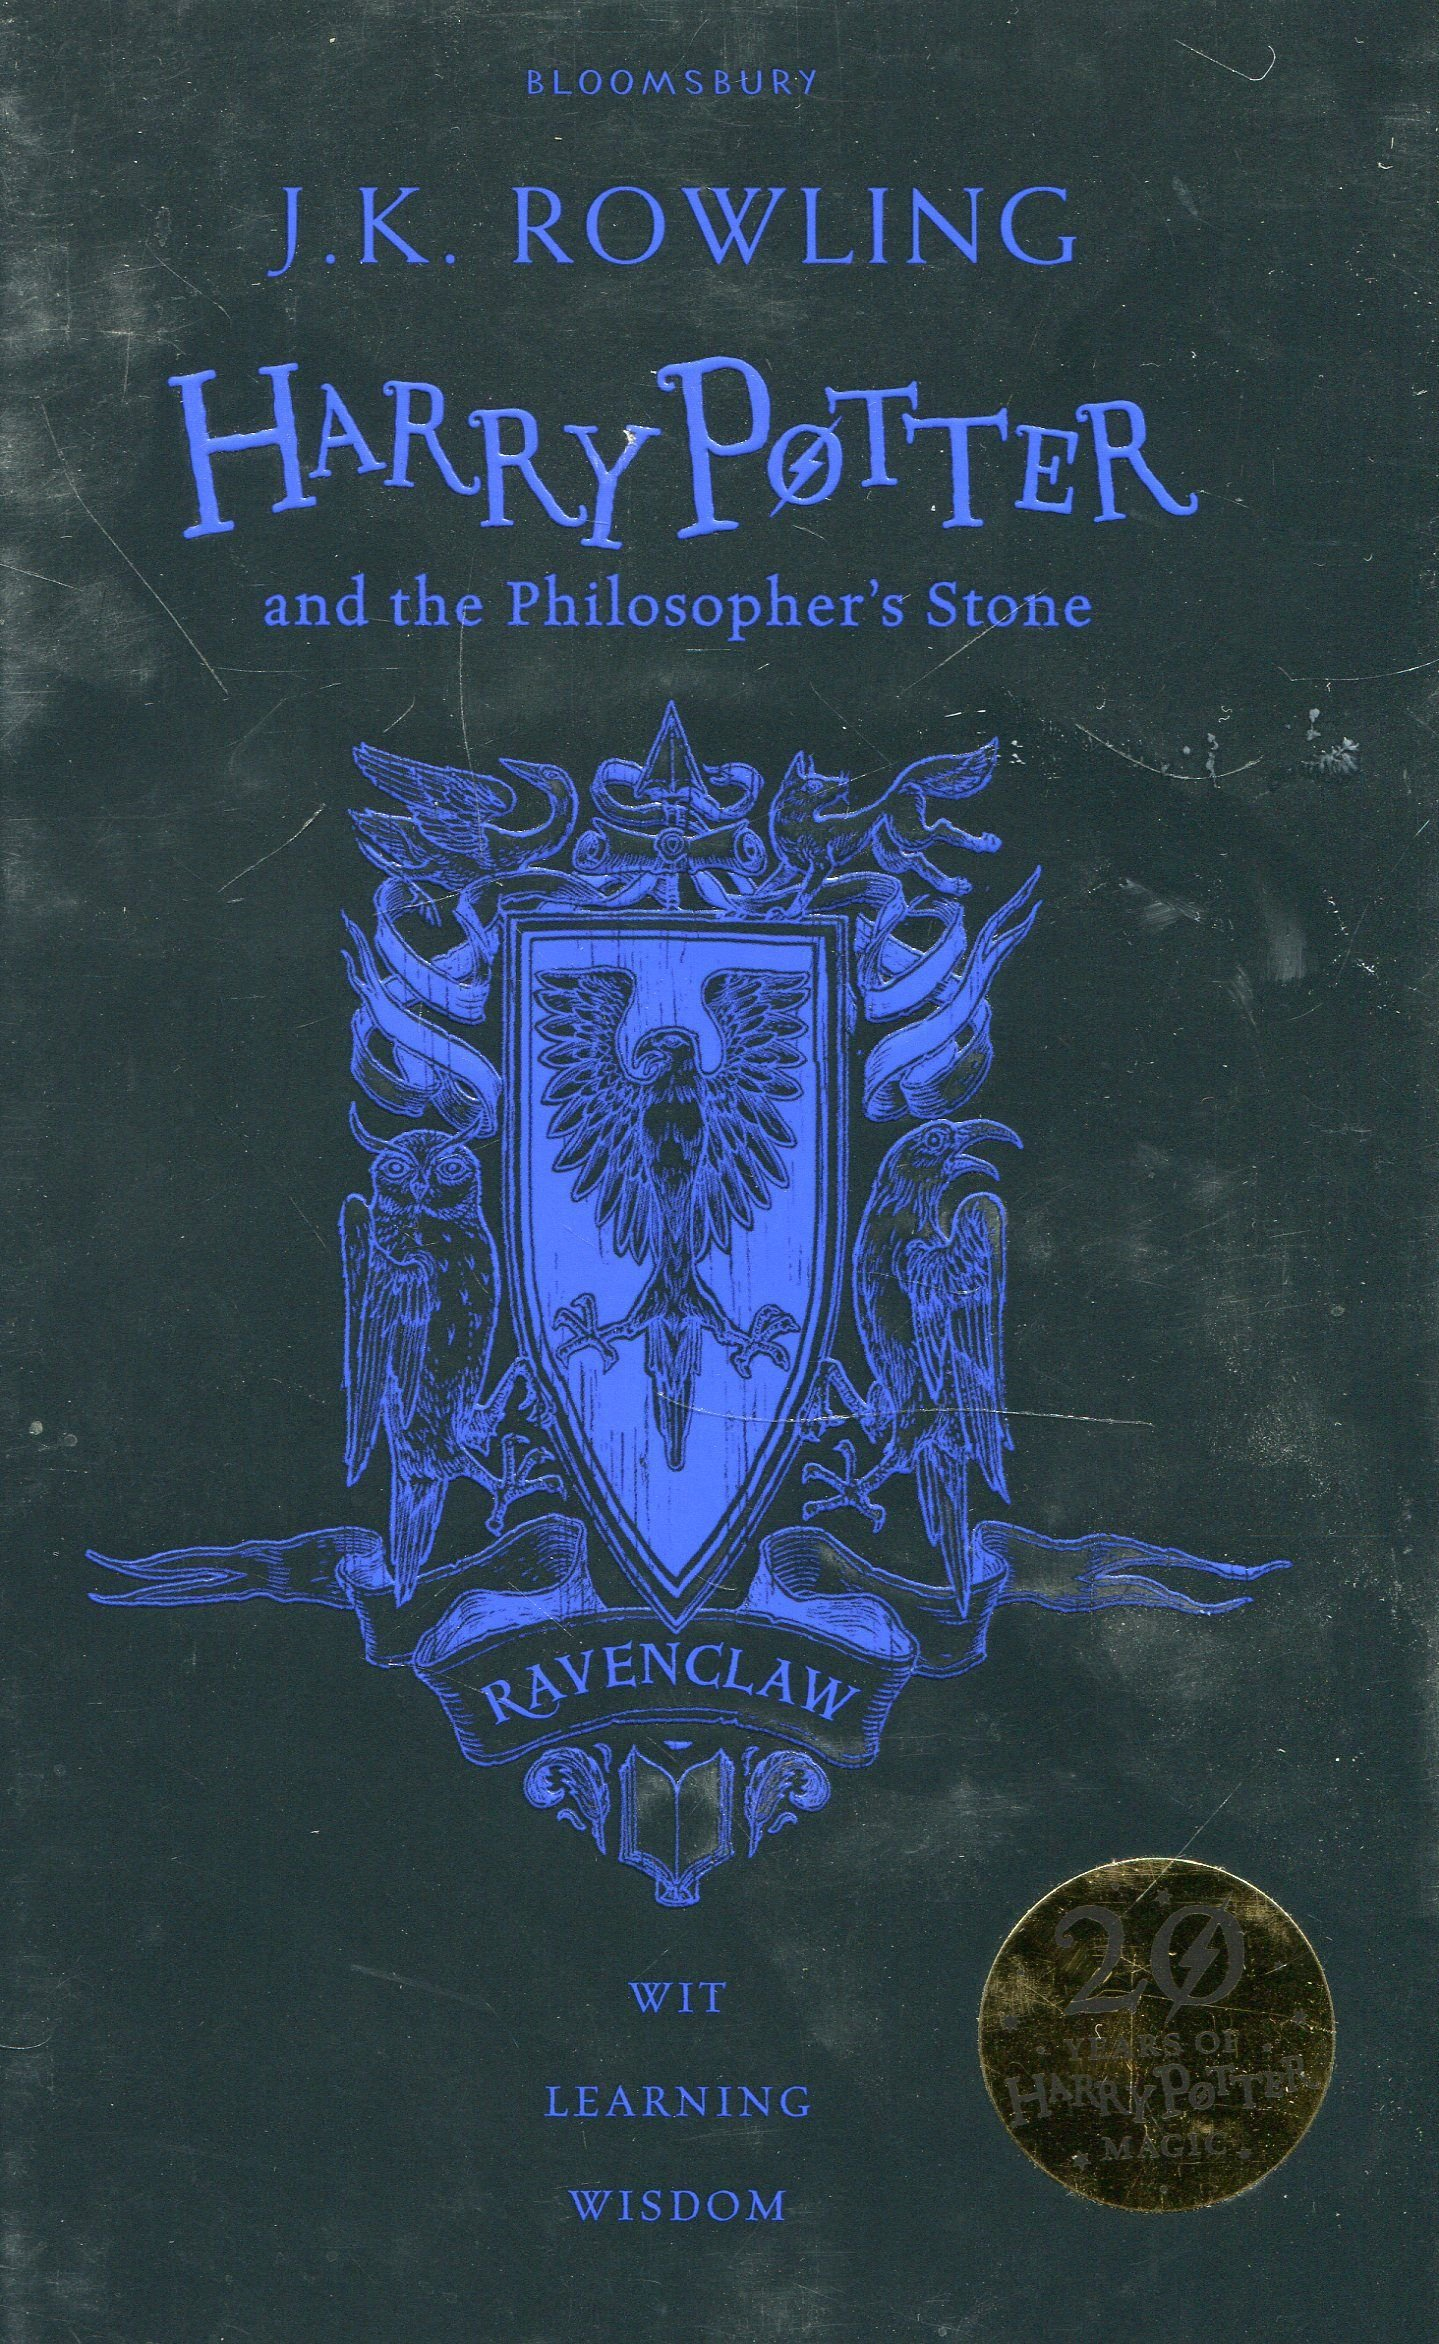 Harry Potter and the Philosopher's Stone – Ravenclaw Edition (Inglese) Cartonato – 1 giu 2017 J.K. Rowling 1408883783 FICTION / Fantasy / General 7-11 ans